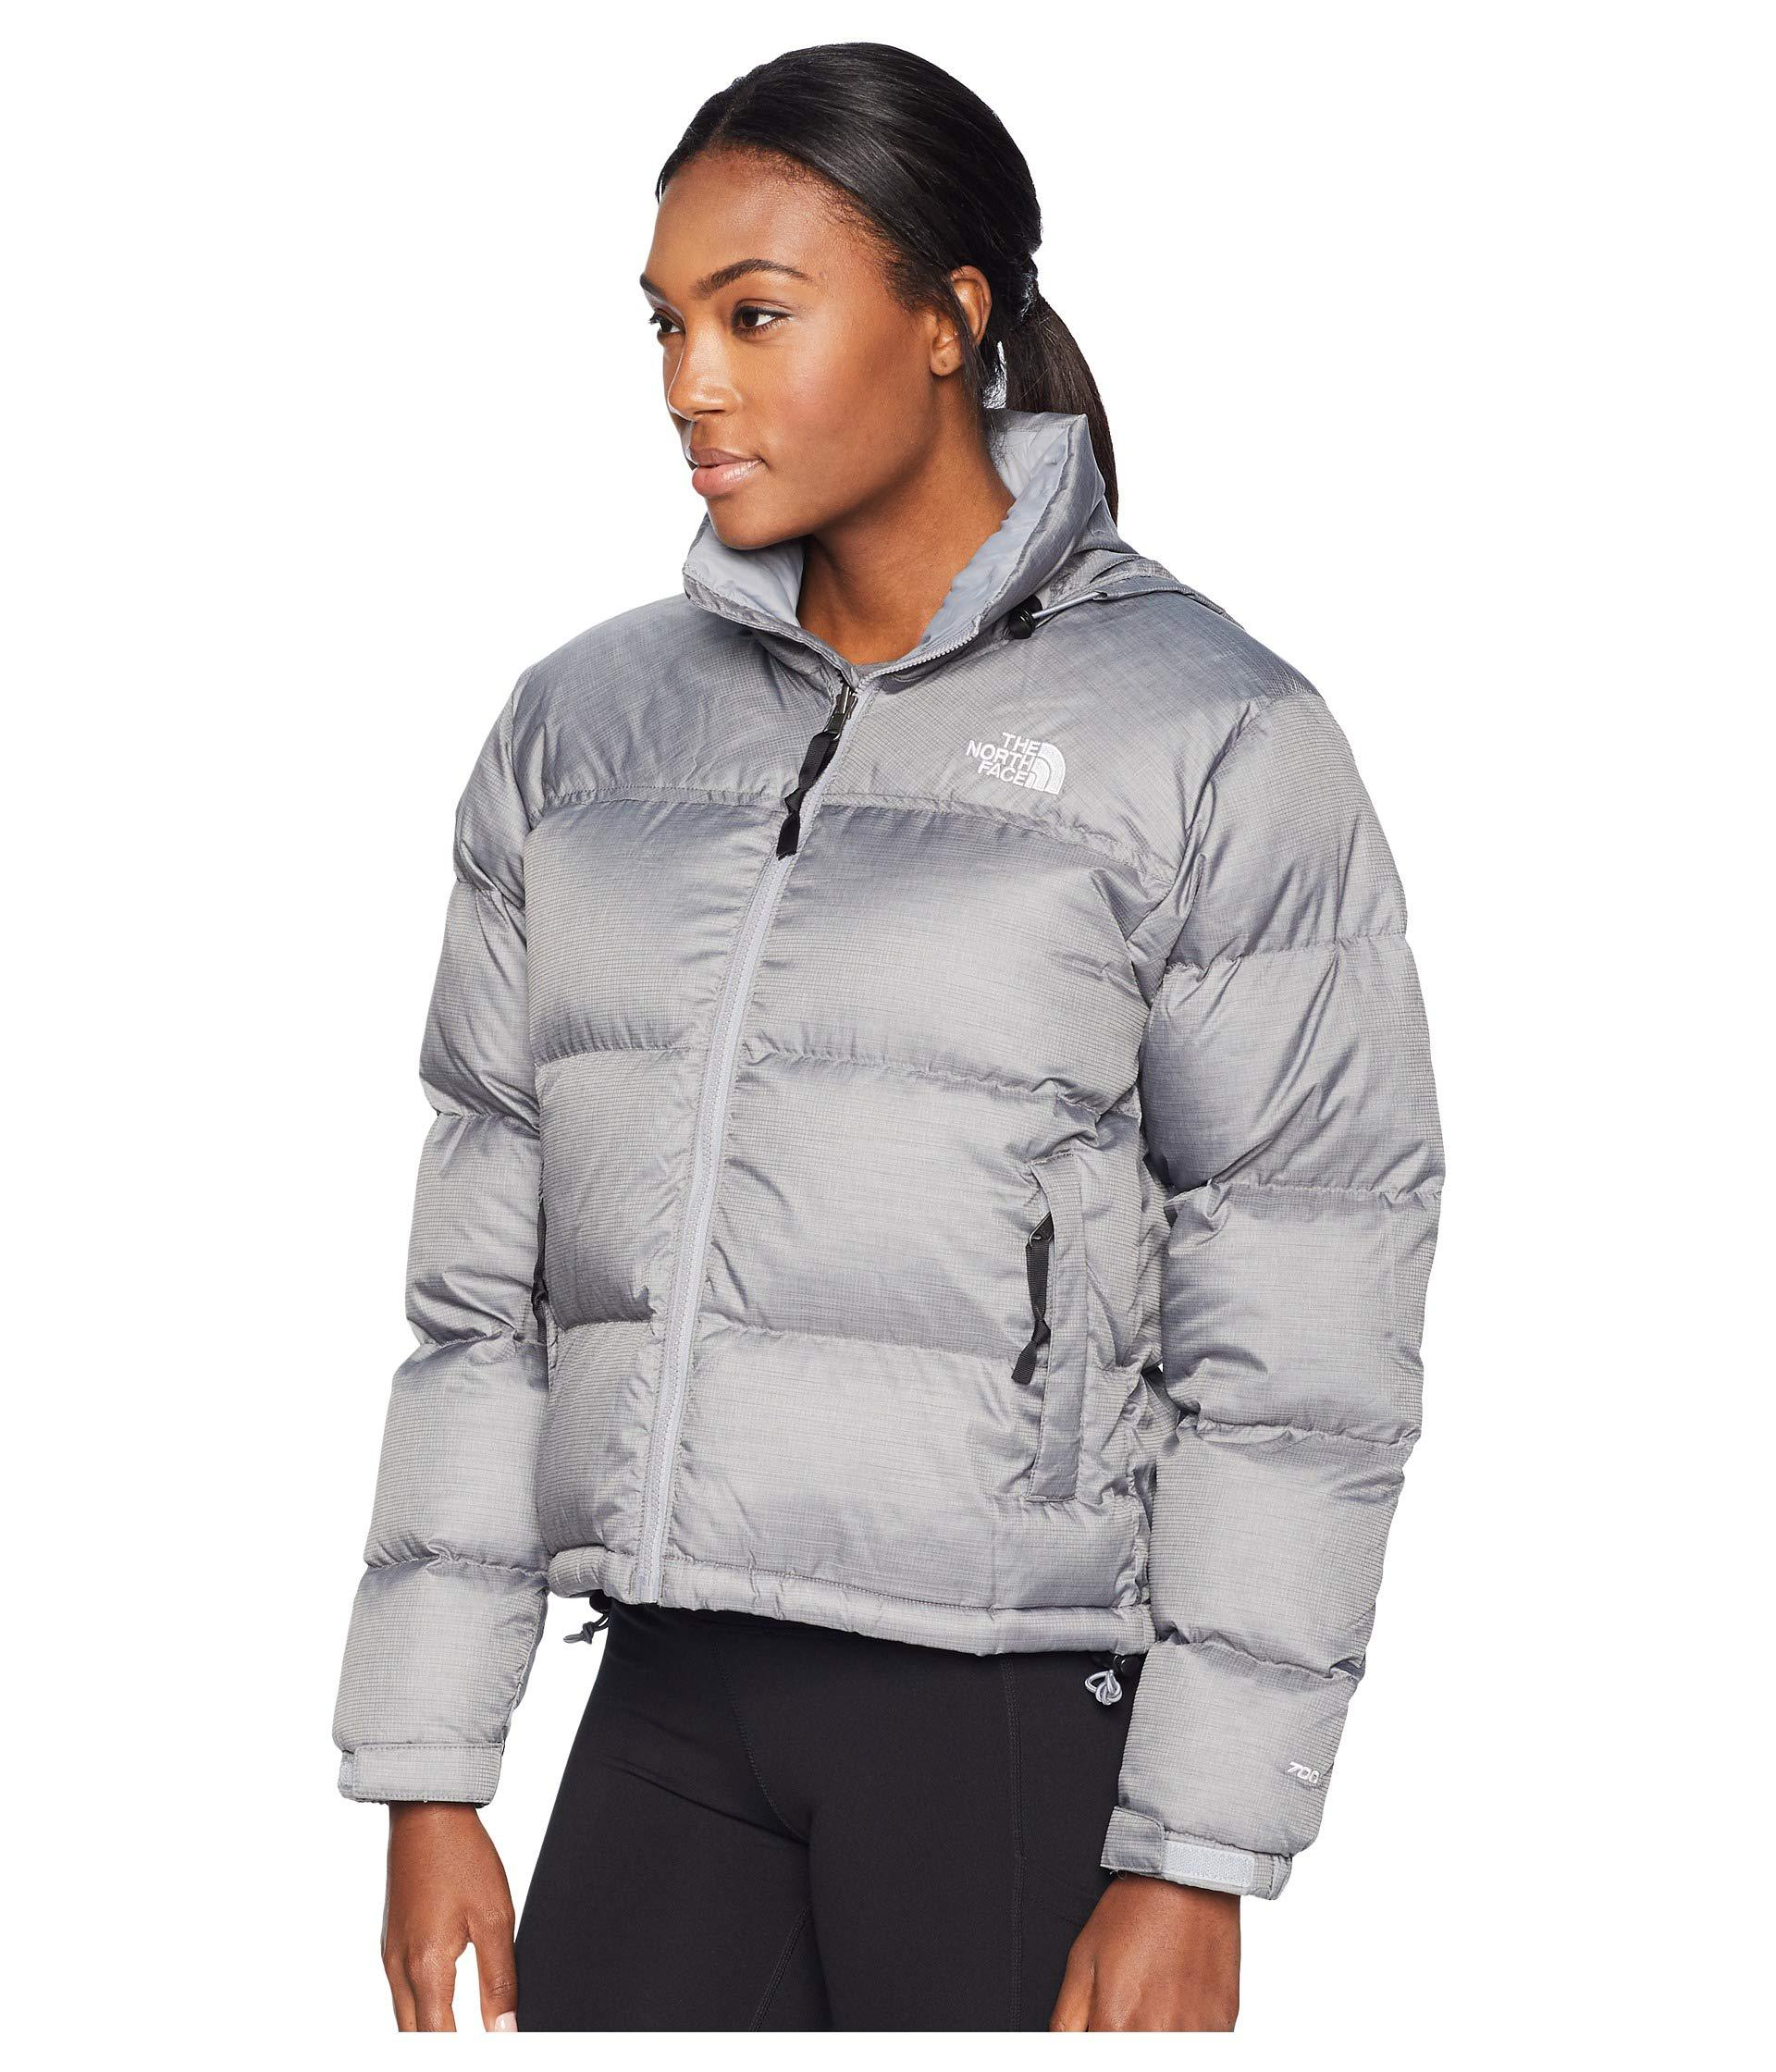 Lyst - The North Face 1996 Retro Nuptse Jacket (tnf Medium Grey Heather)  Women s Coat in Gray d386d02f8